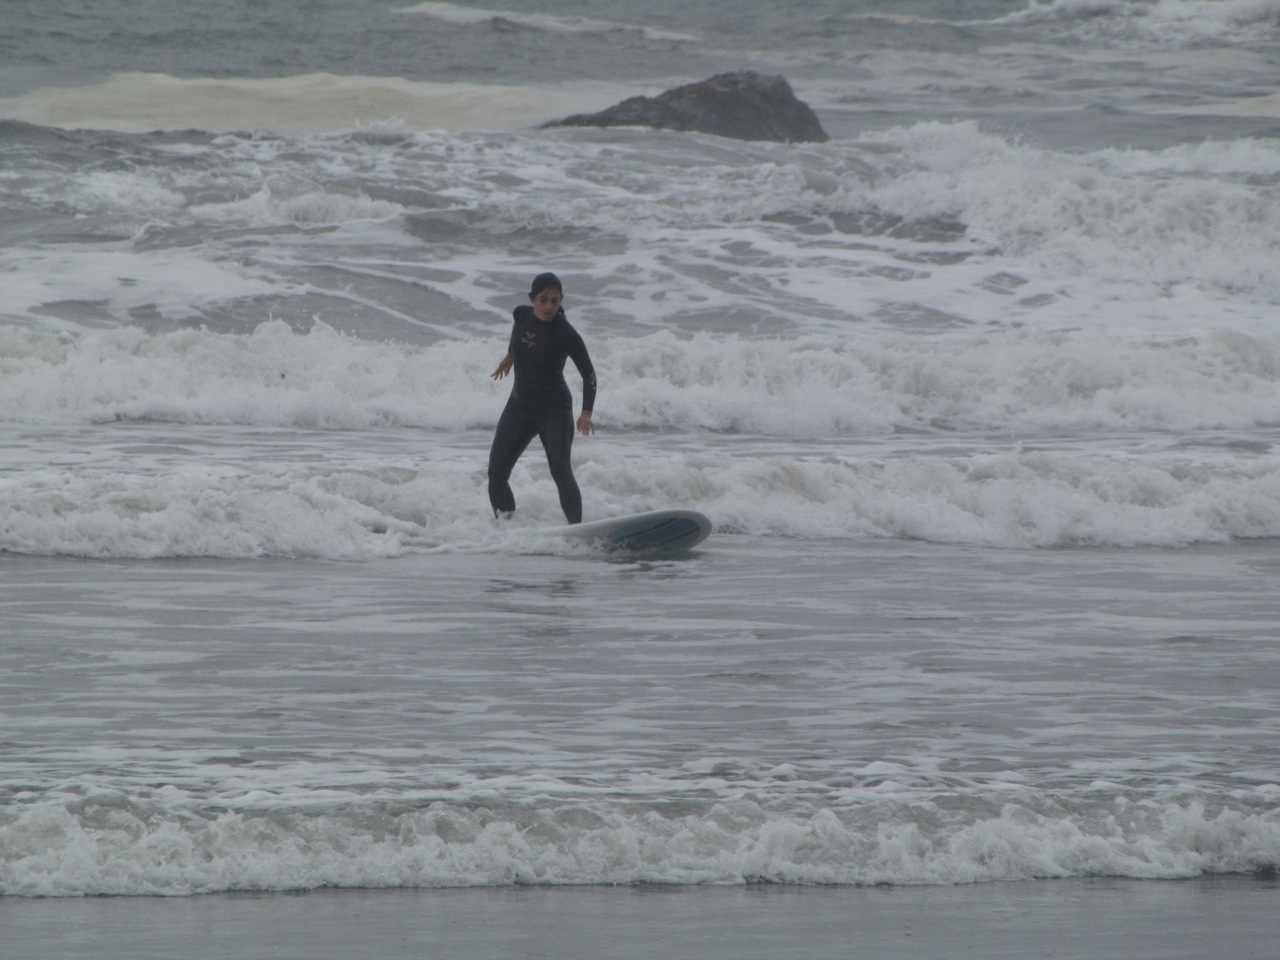 That's me out in the 'washing machine' waves that were last weekend.